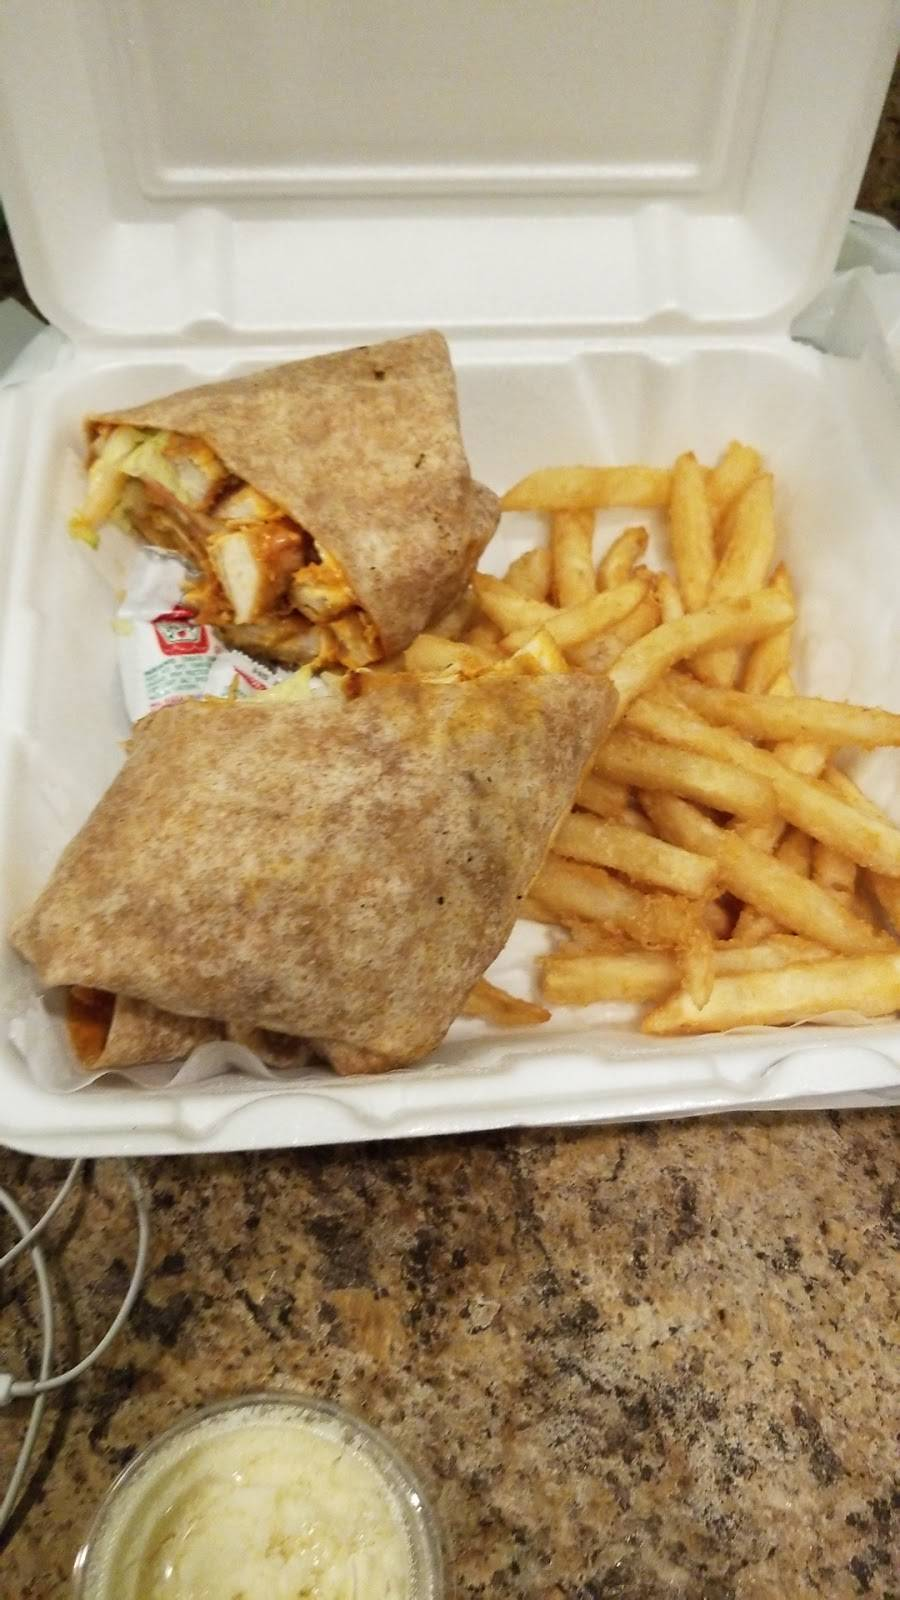 Sals Pizzeria   meal takeaway   6127 Bergenline Ave, West New York, NJ 07093, USA   2018681999 OR +1 201-868-1999